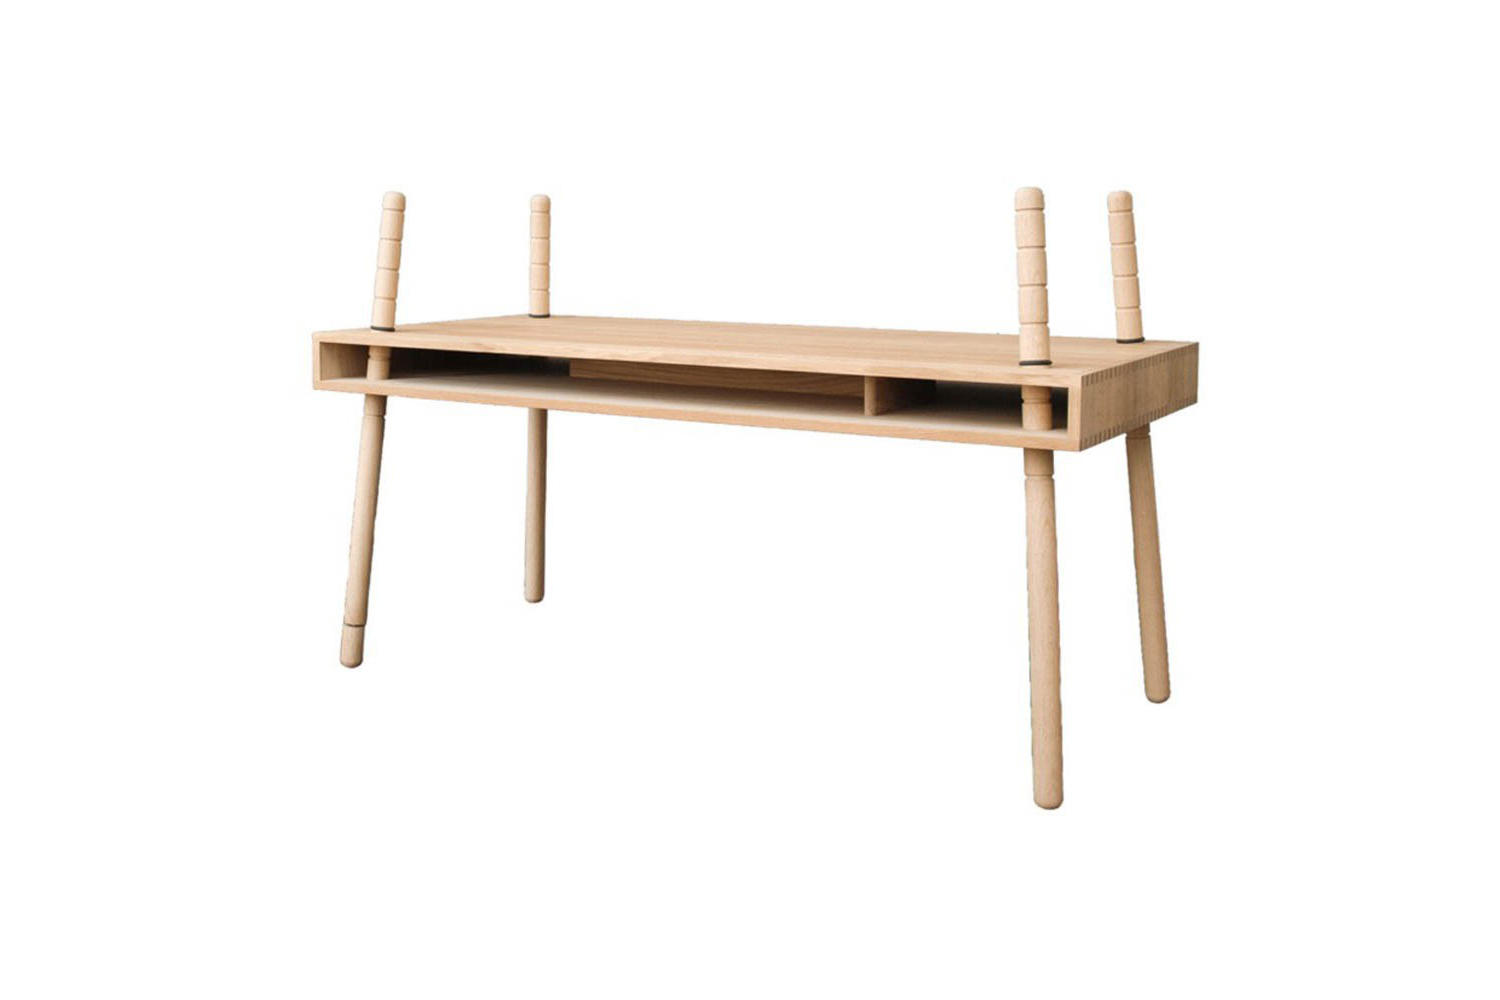 The Caspar Desk in natural from Perludi adapts to the height of the child and breaks down easily for storage; $774 at Smallable.